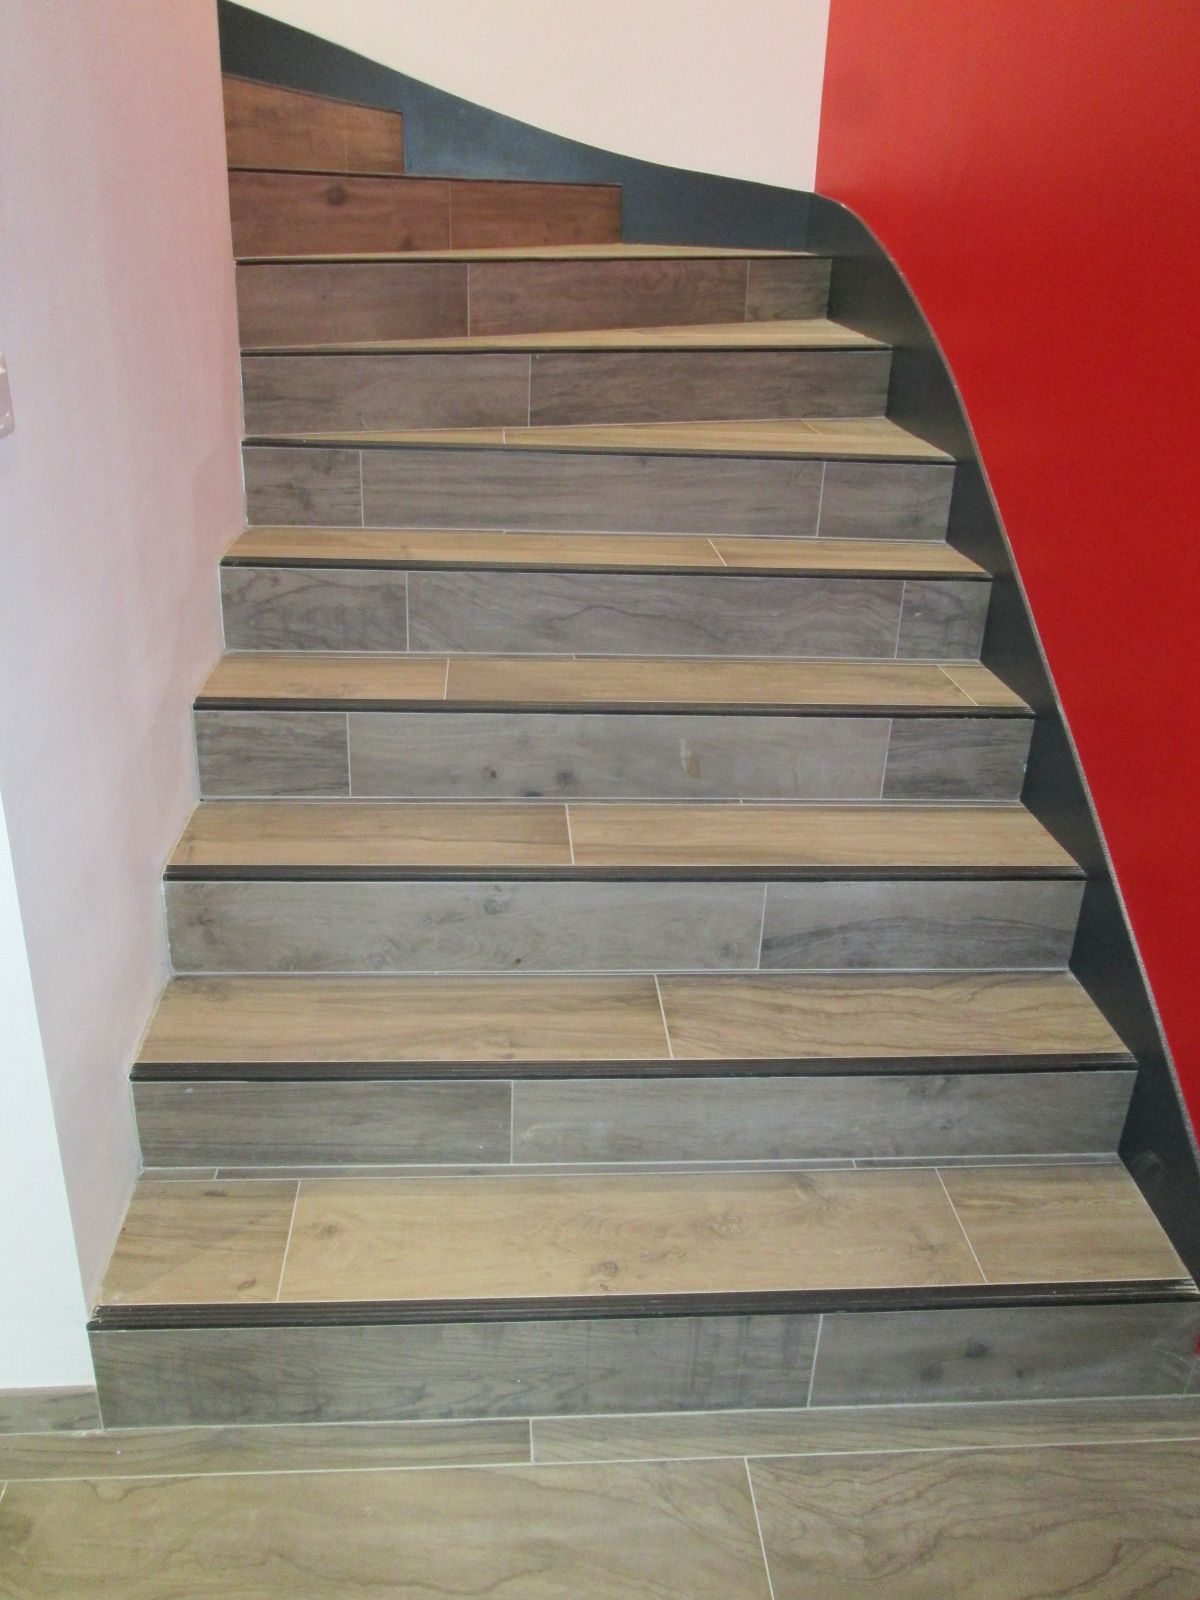 Quart Tournant Carrelage Escalier Carrelage Escalier Carrele Revetement Escalier